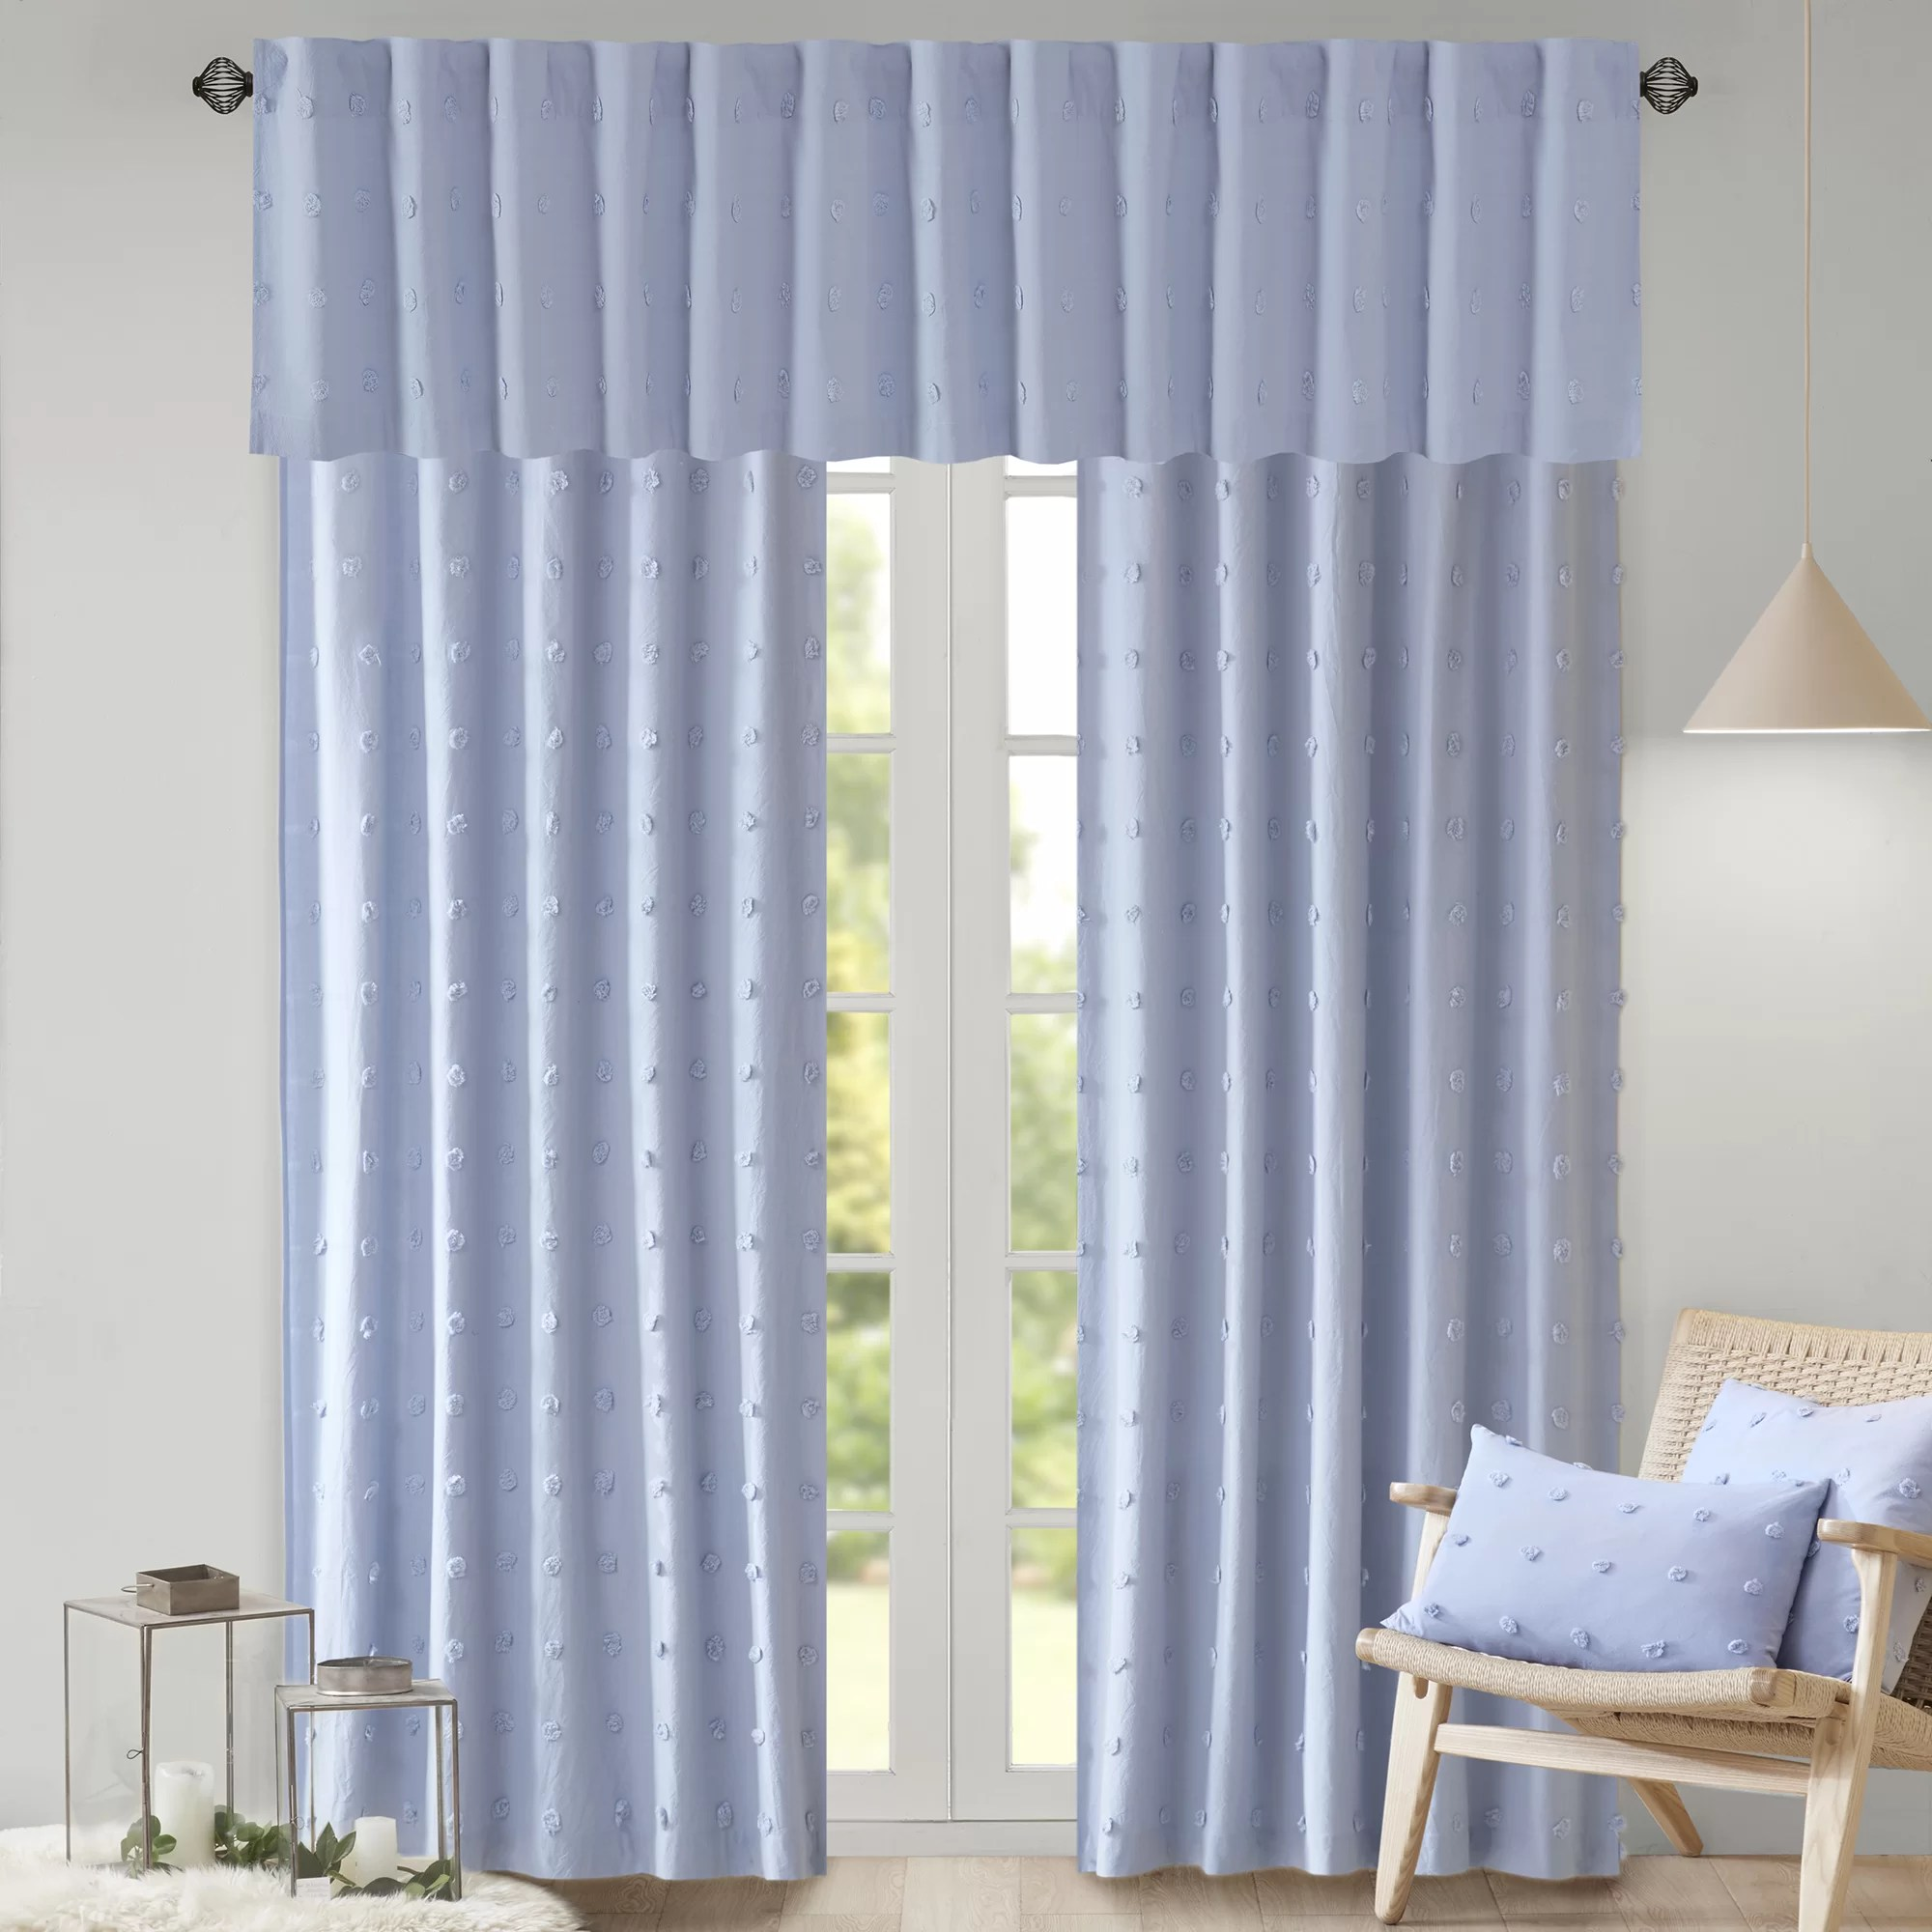 Cotton Curtain Panels Braunste Cotton Jacquard Pom Pom Window Solid Rod Pocket Single Curtain Panel